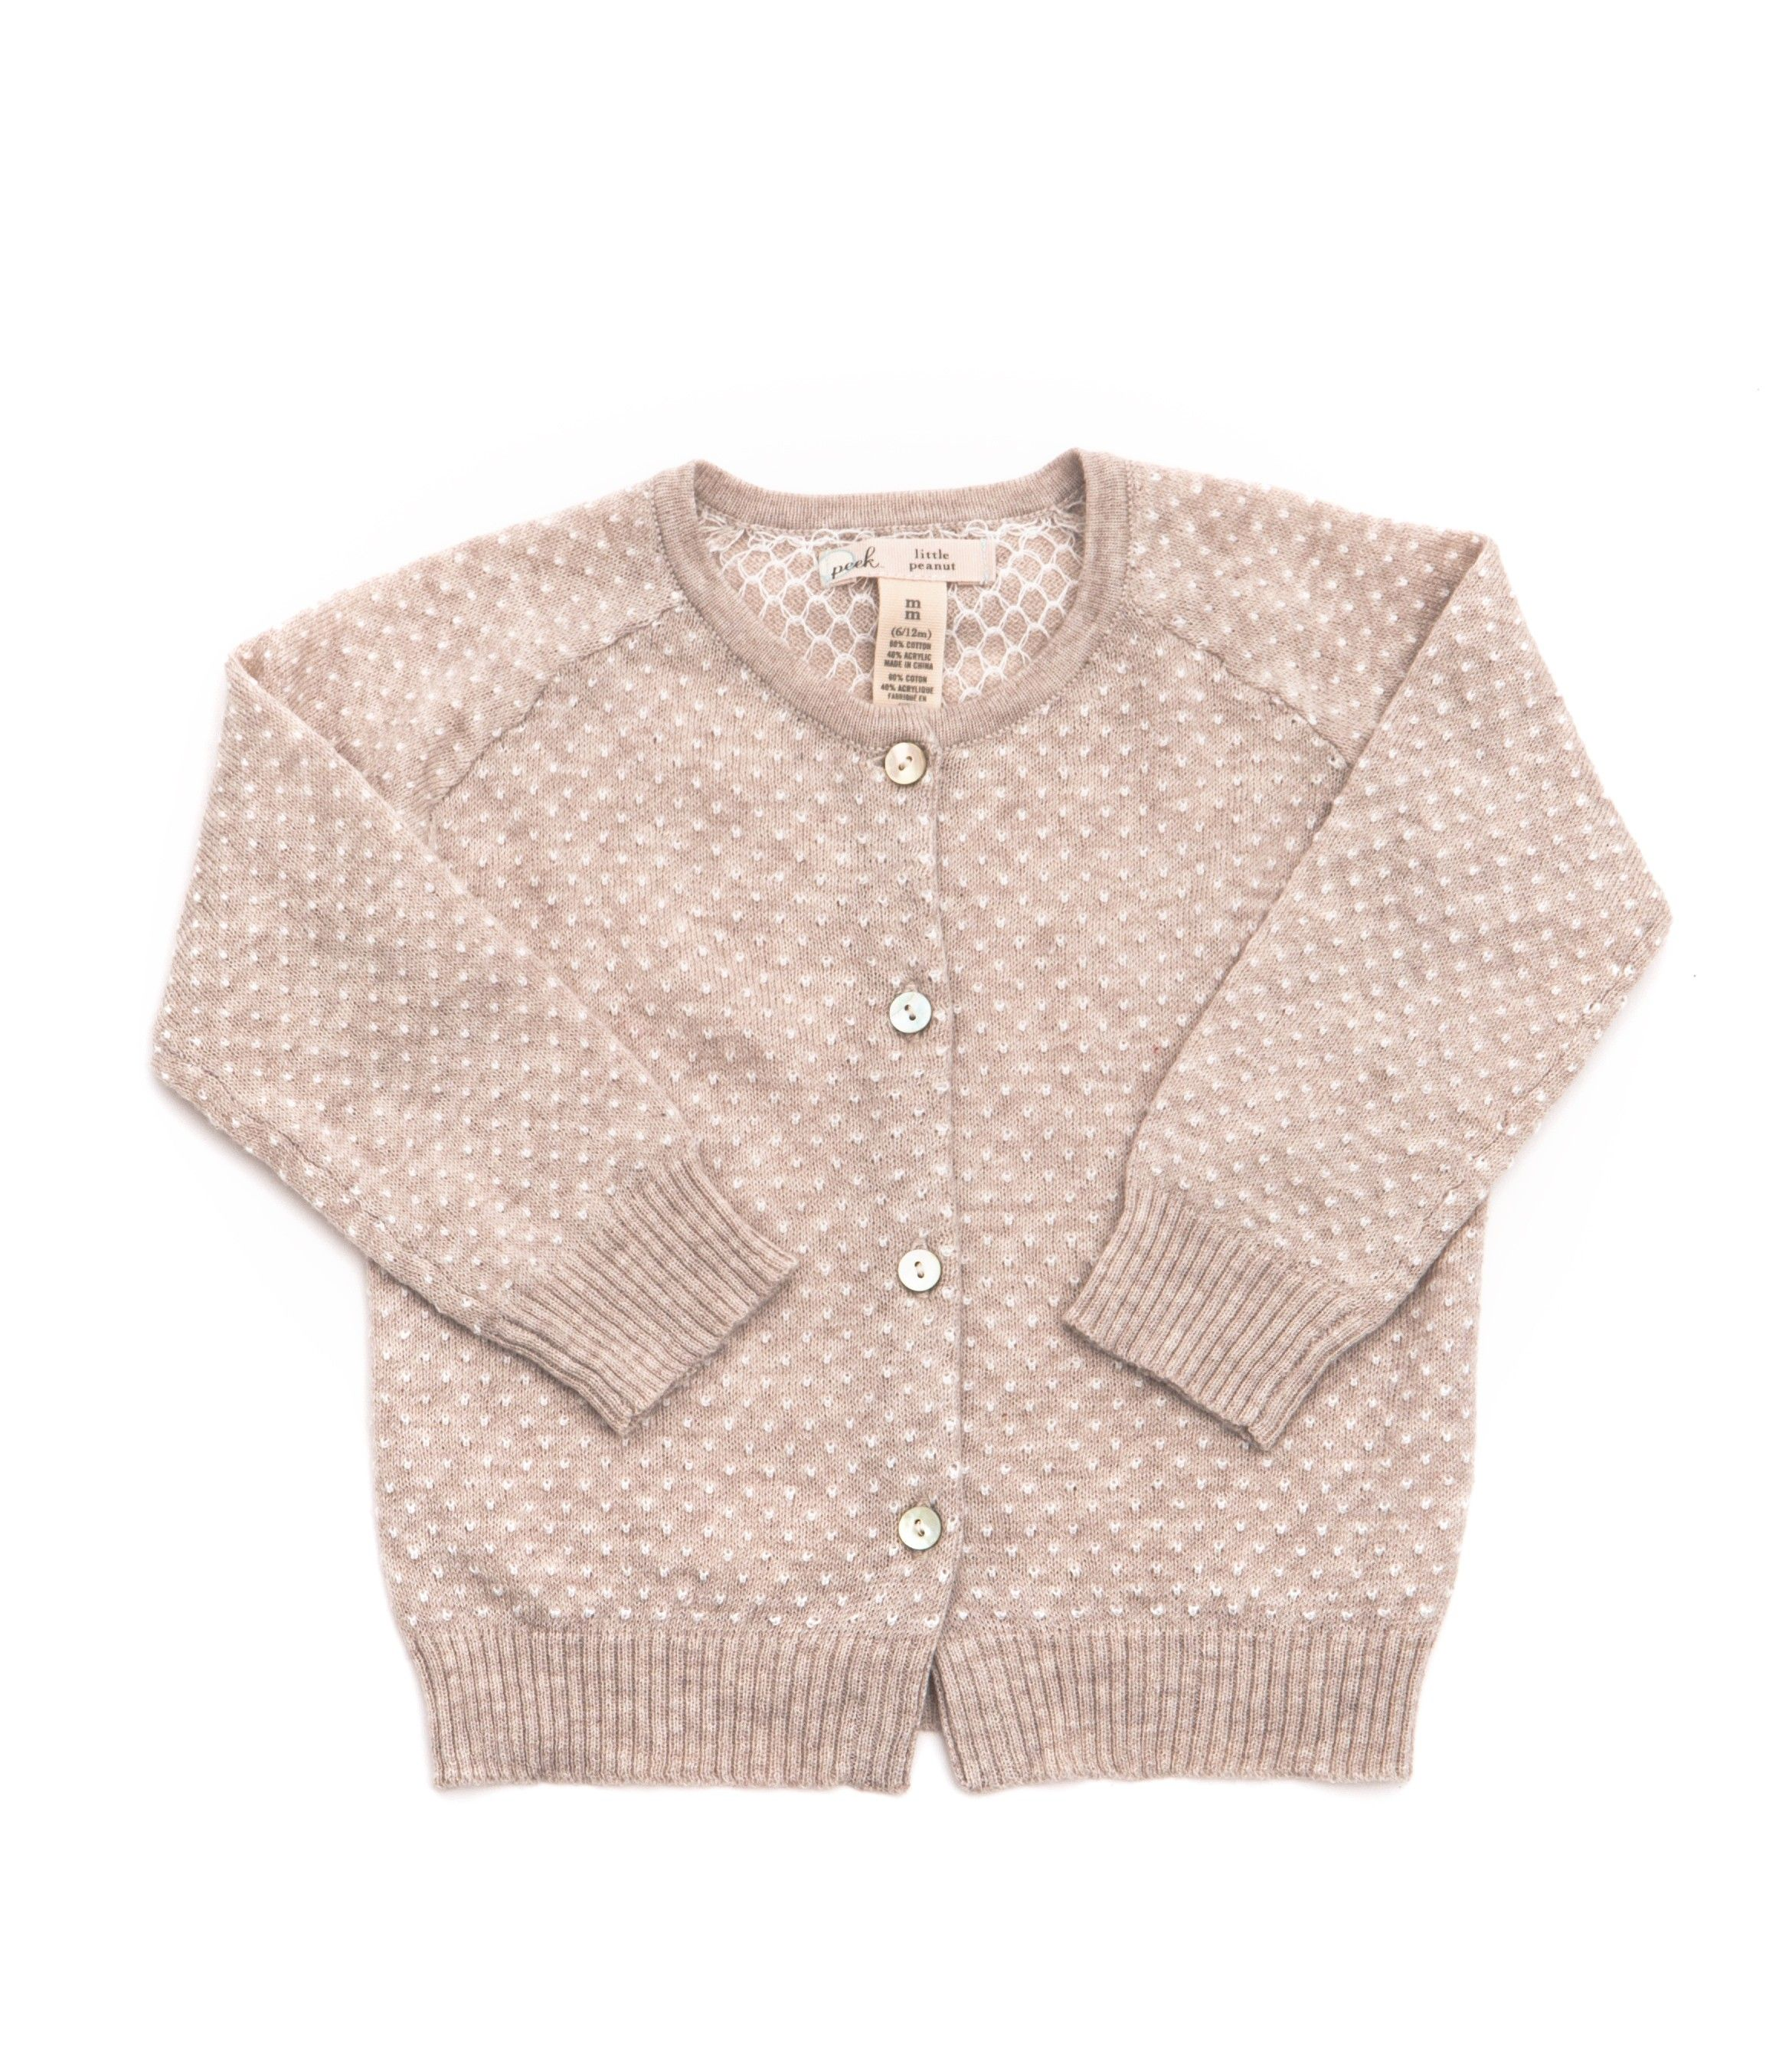 eacf91f9136 Baby Cameron Cardigan - Little Peanut Essentials - Shop - baby girls ...